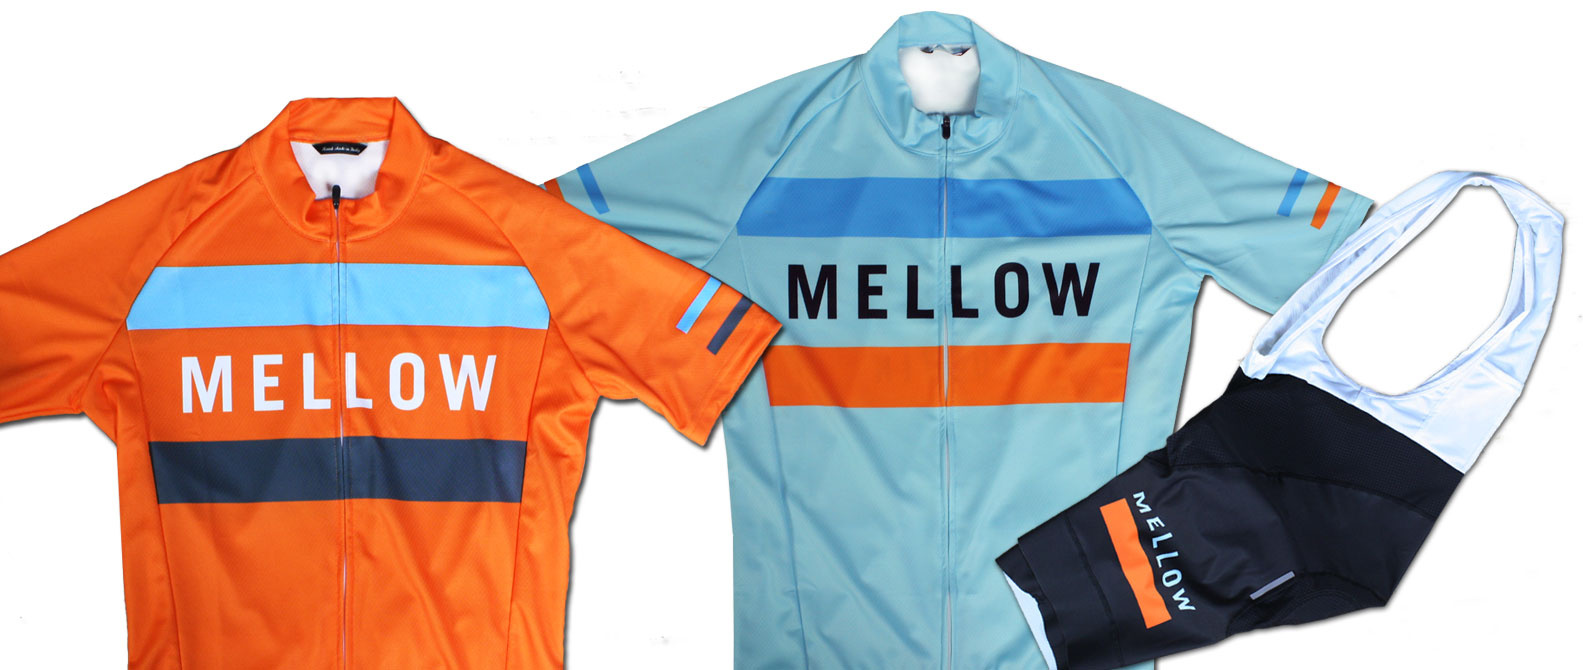 THE MELLOW ORANGE & ICE KIT